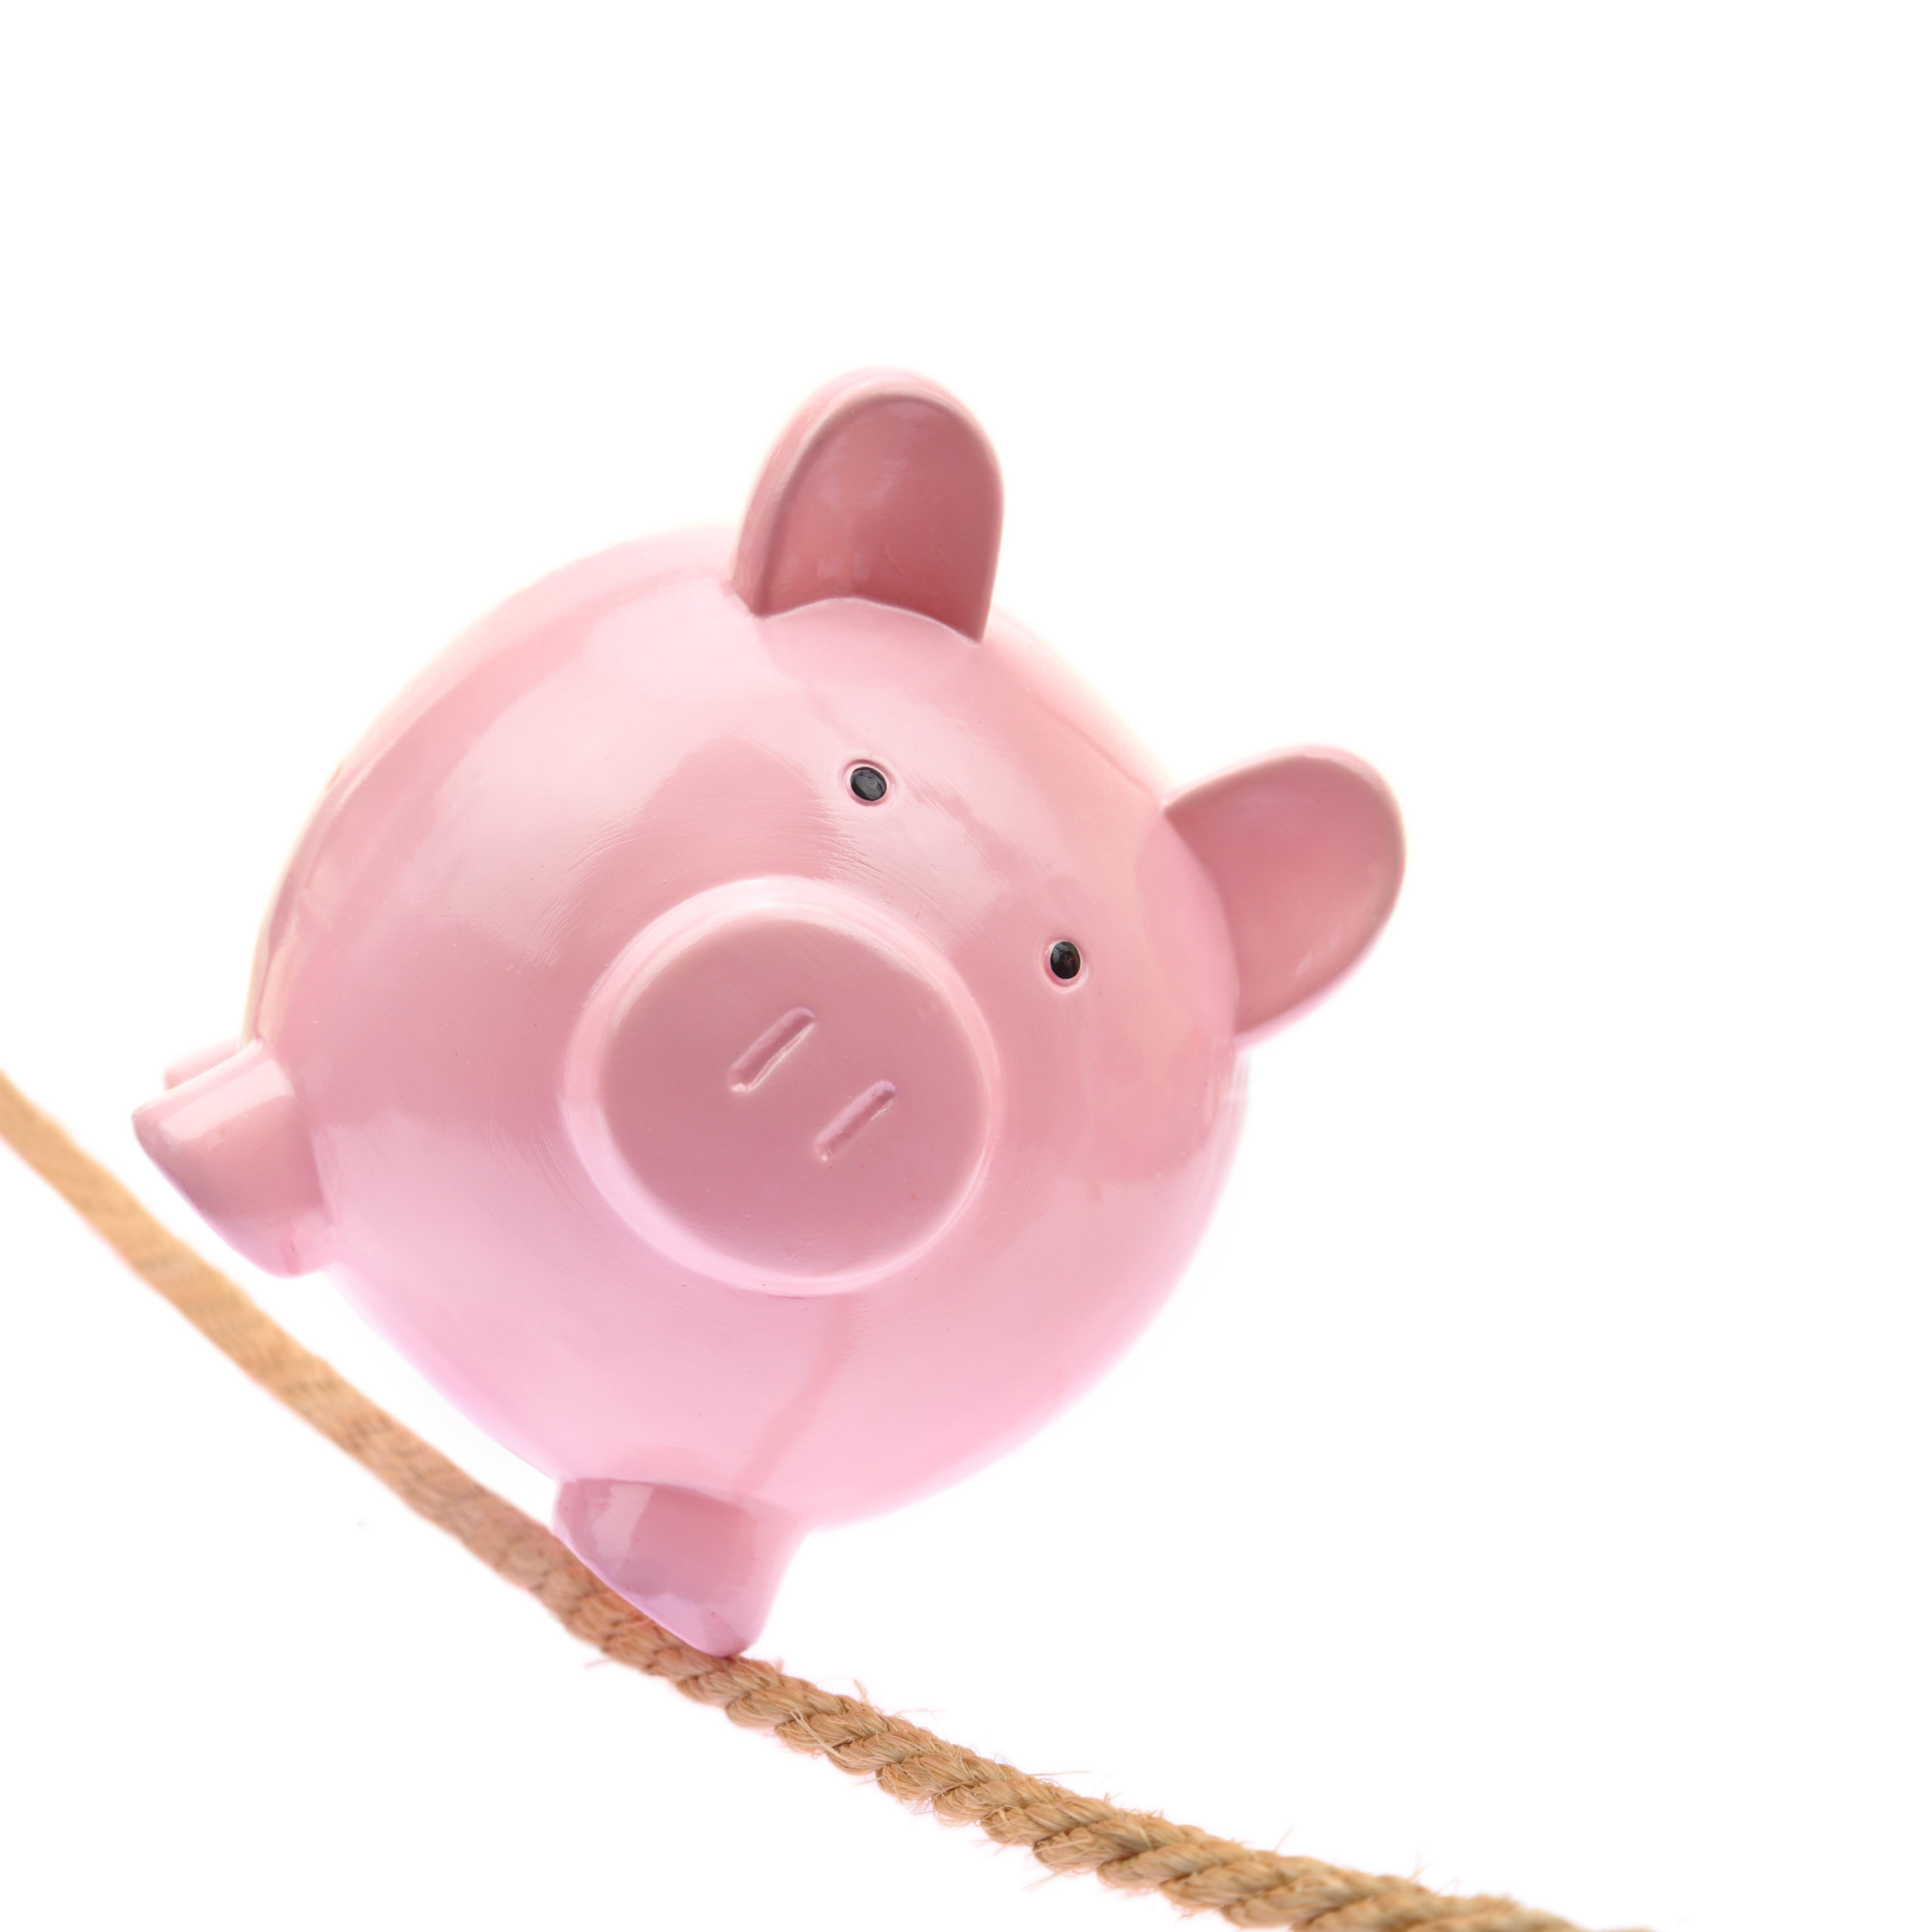 Piggy bank balancing in a rope